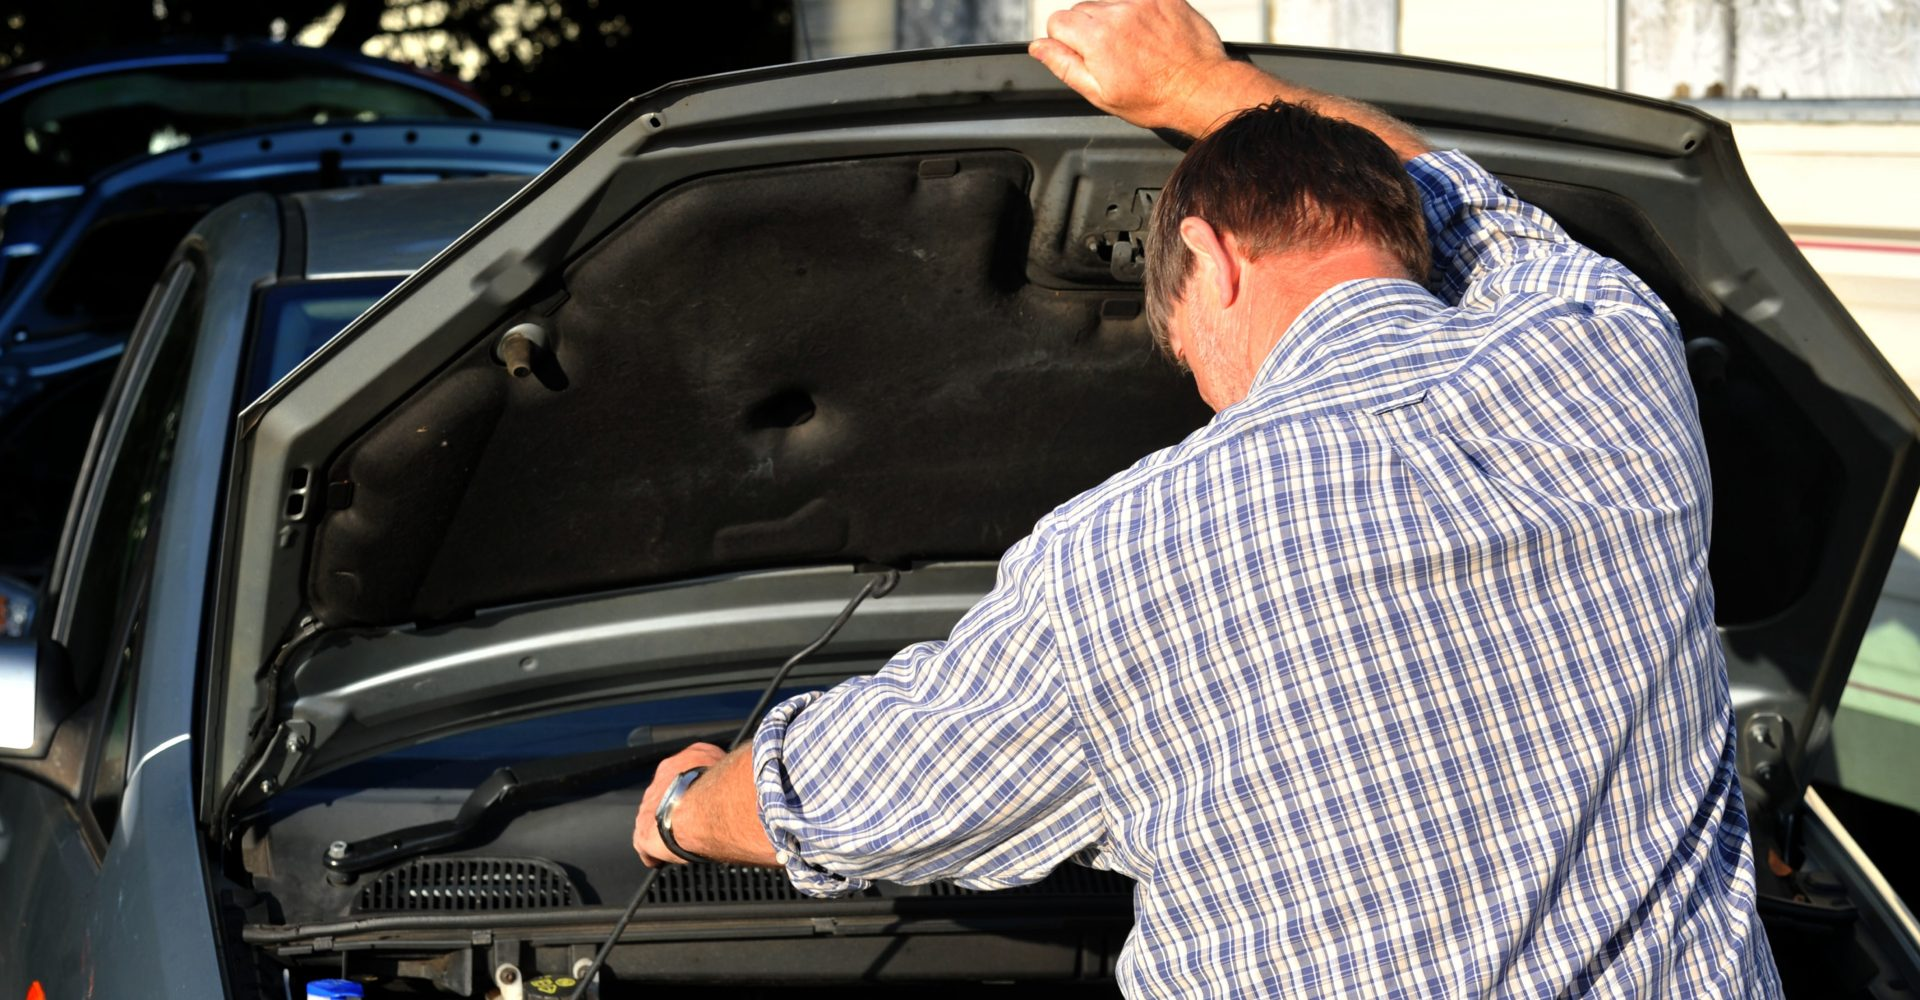 Drivers warned that lockdown rules could leave car batteries flat